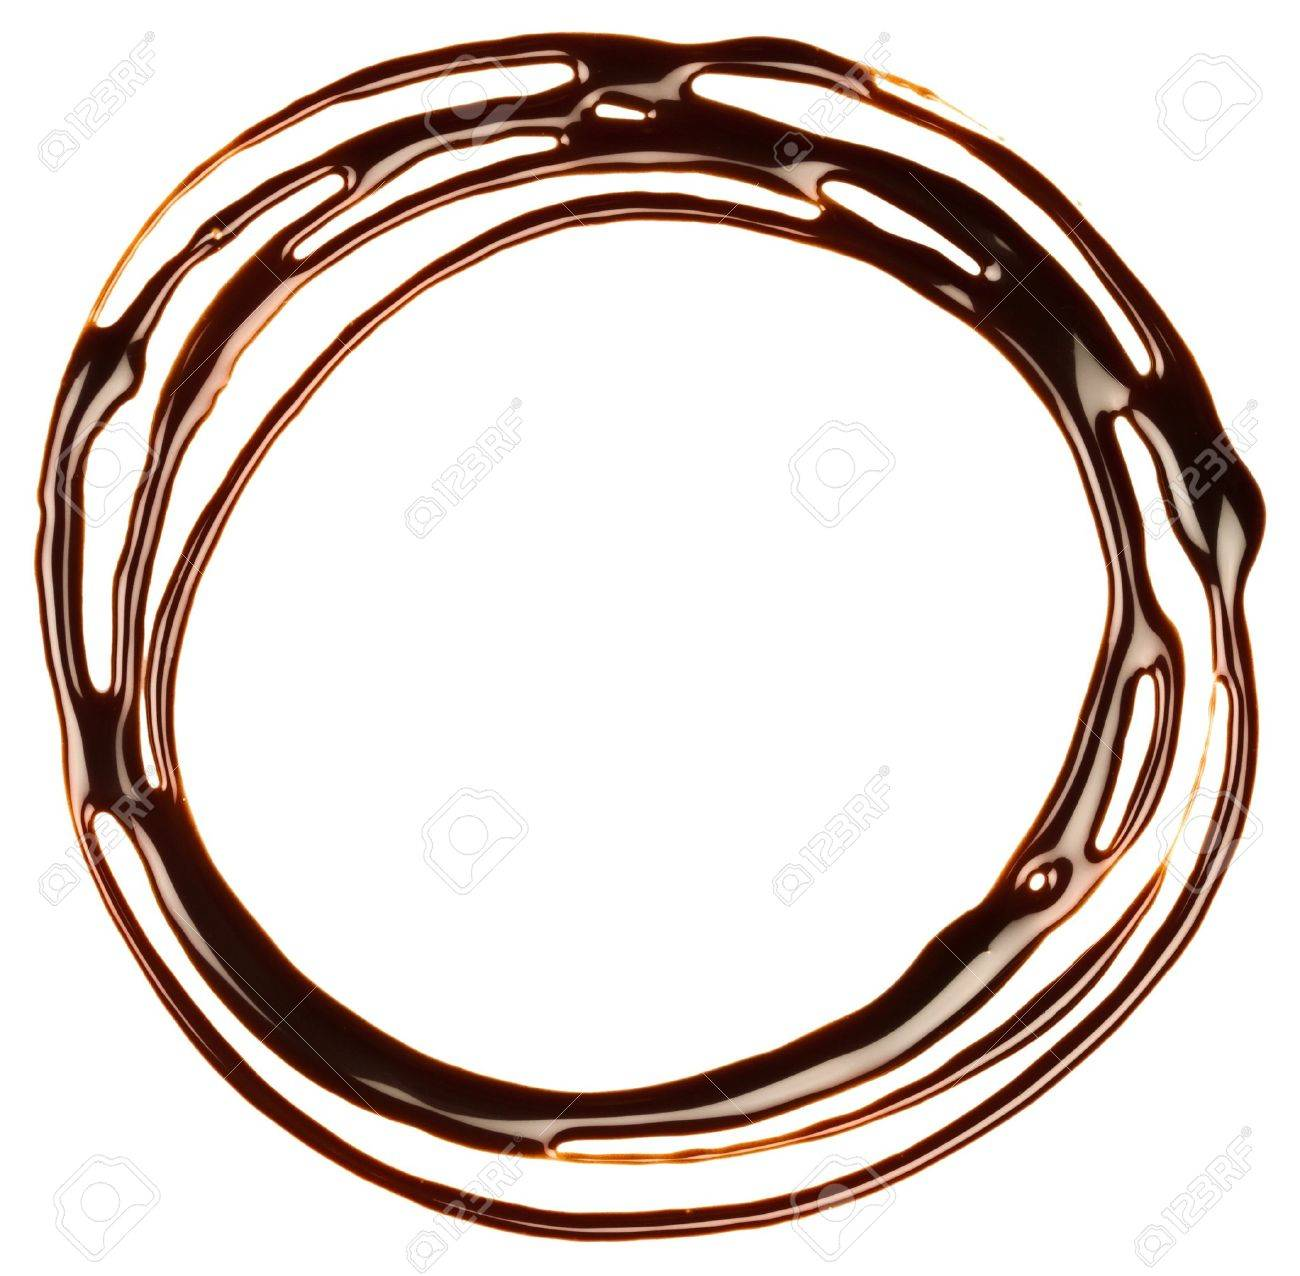 Chocolate syrup drip, frame is isolated on a white background Stock Photo - 15094278